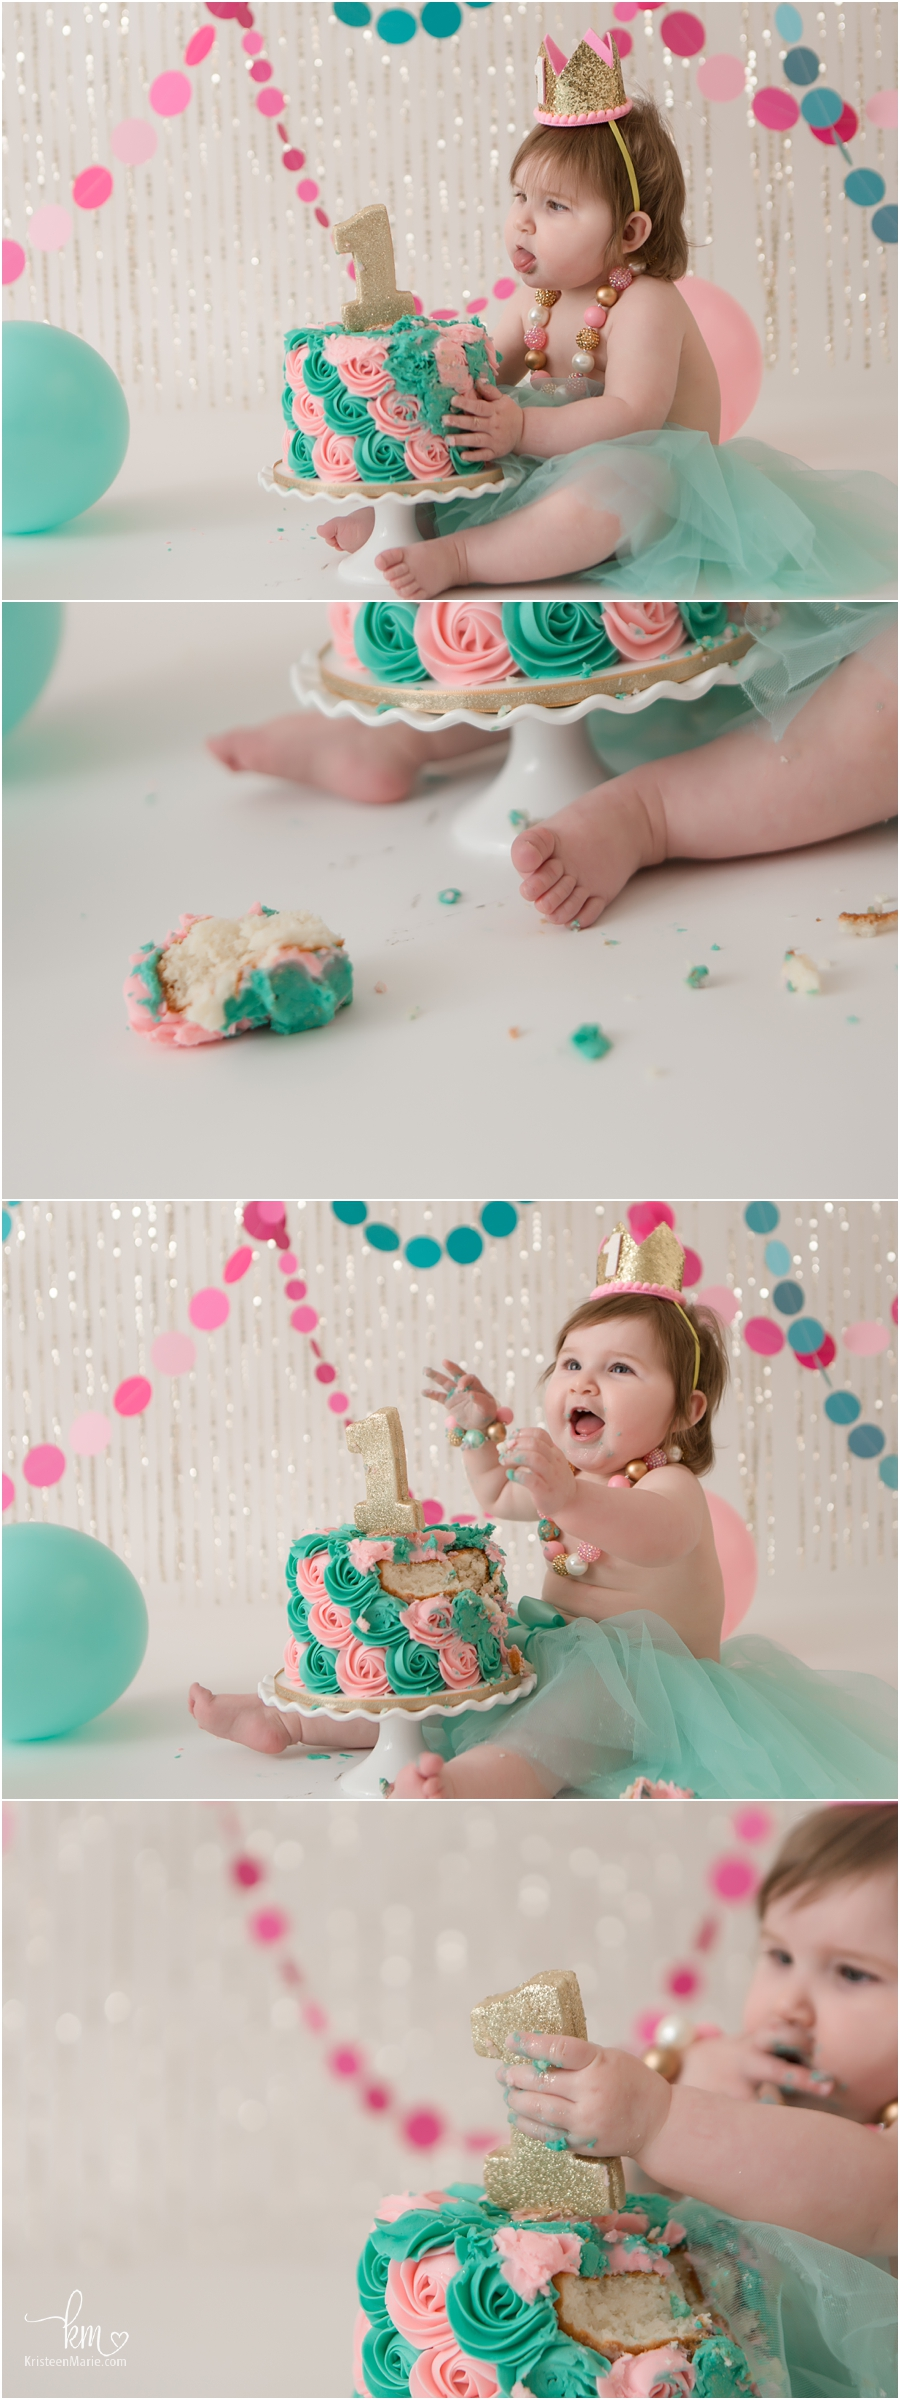 Pink, teal, and gold cake smash session for 1st birthday